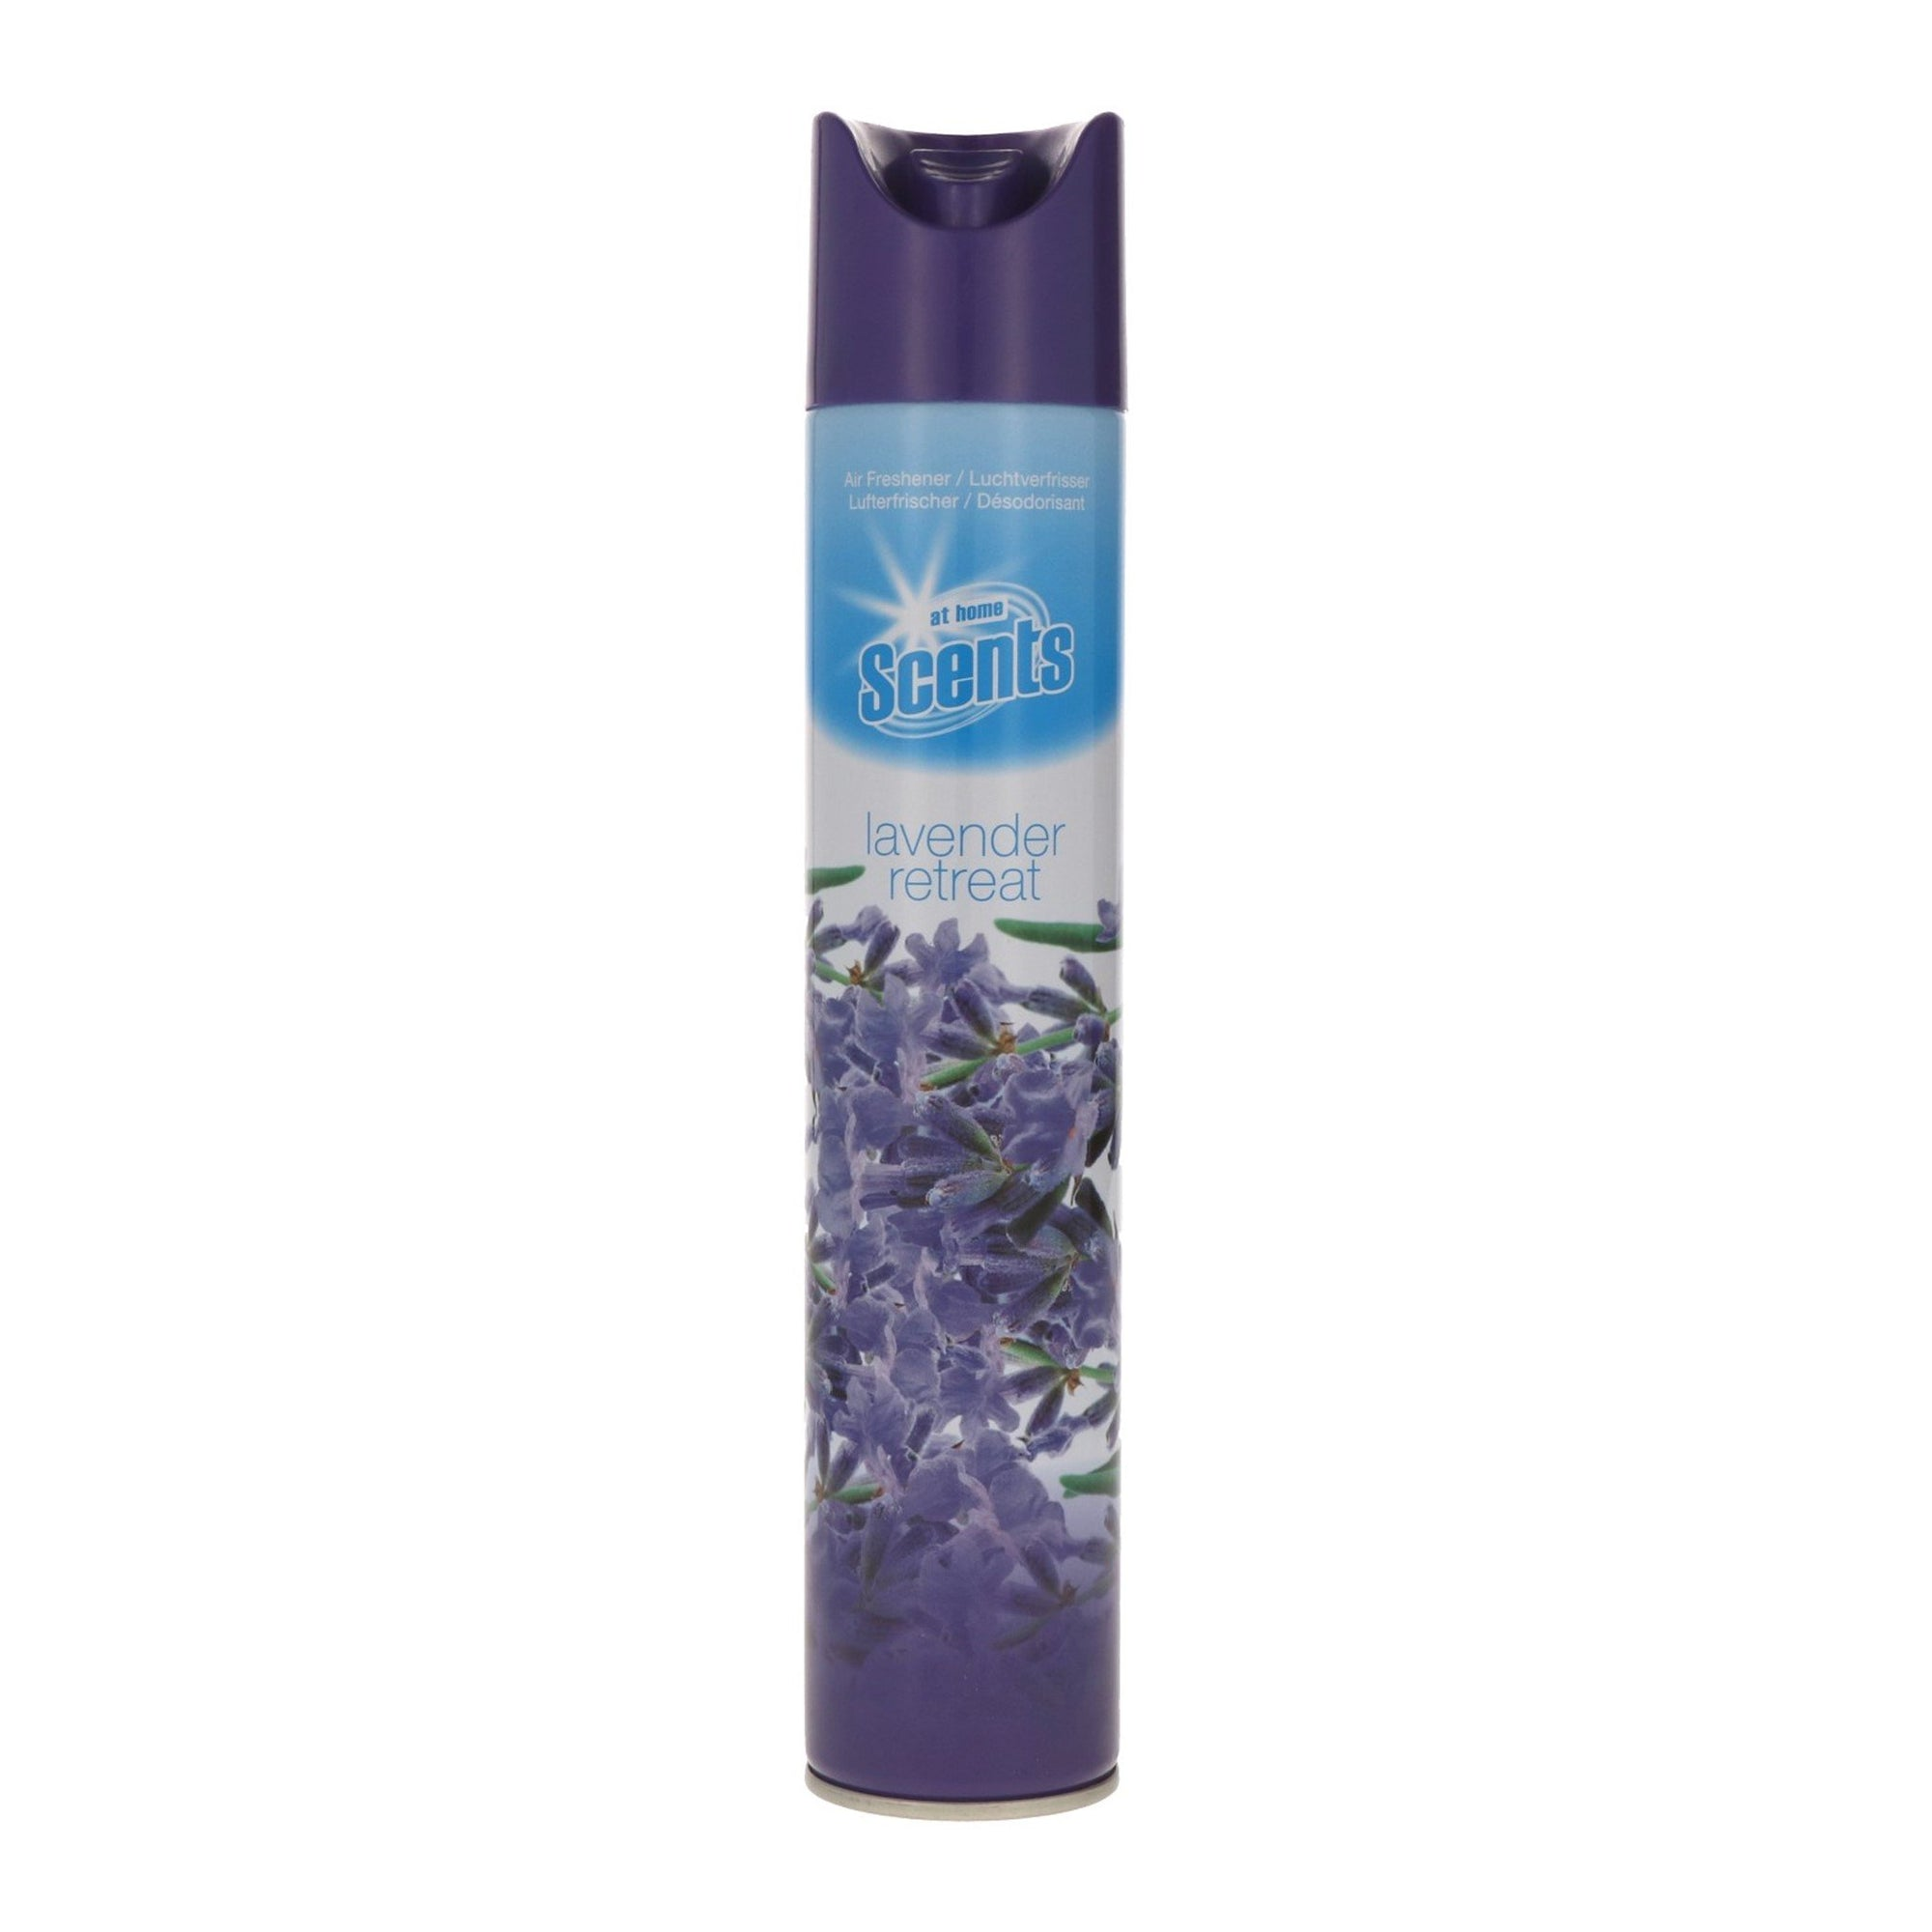 At Home Scents Air Freshener Lavender Retreat 400ml